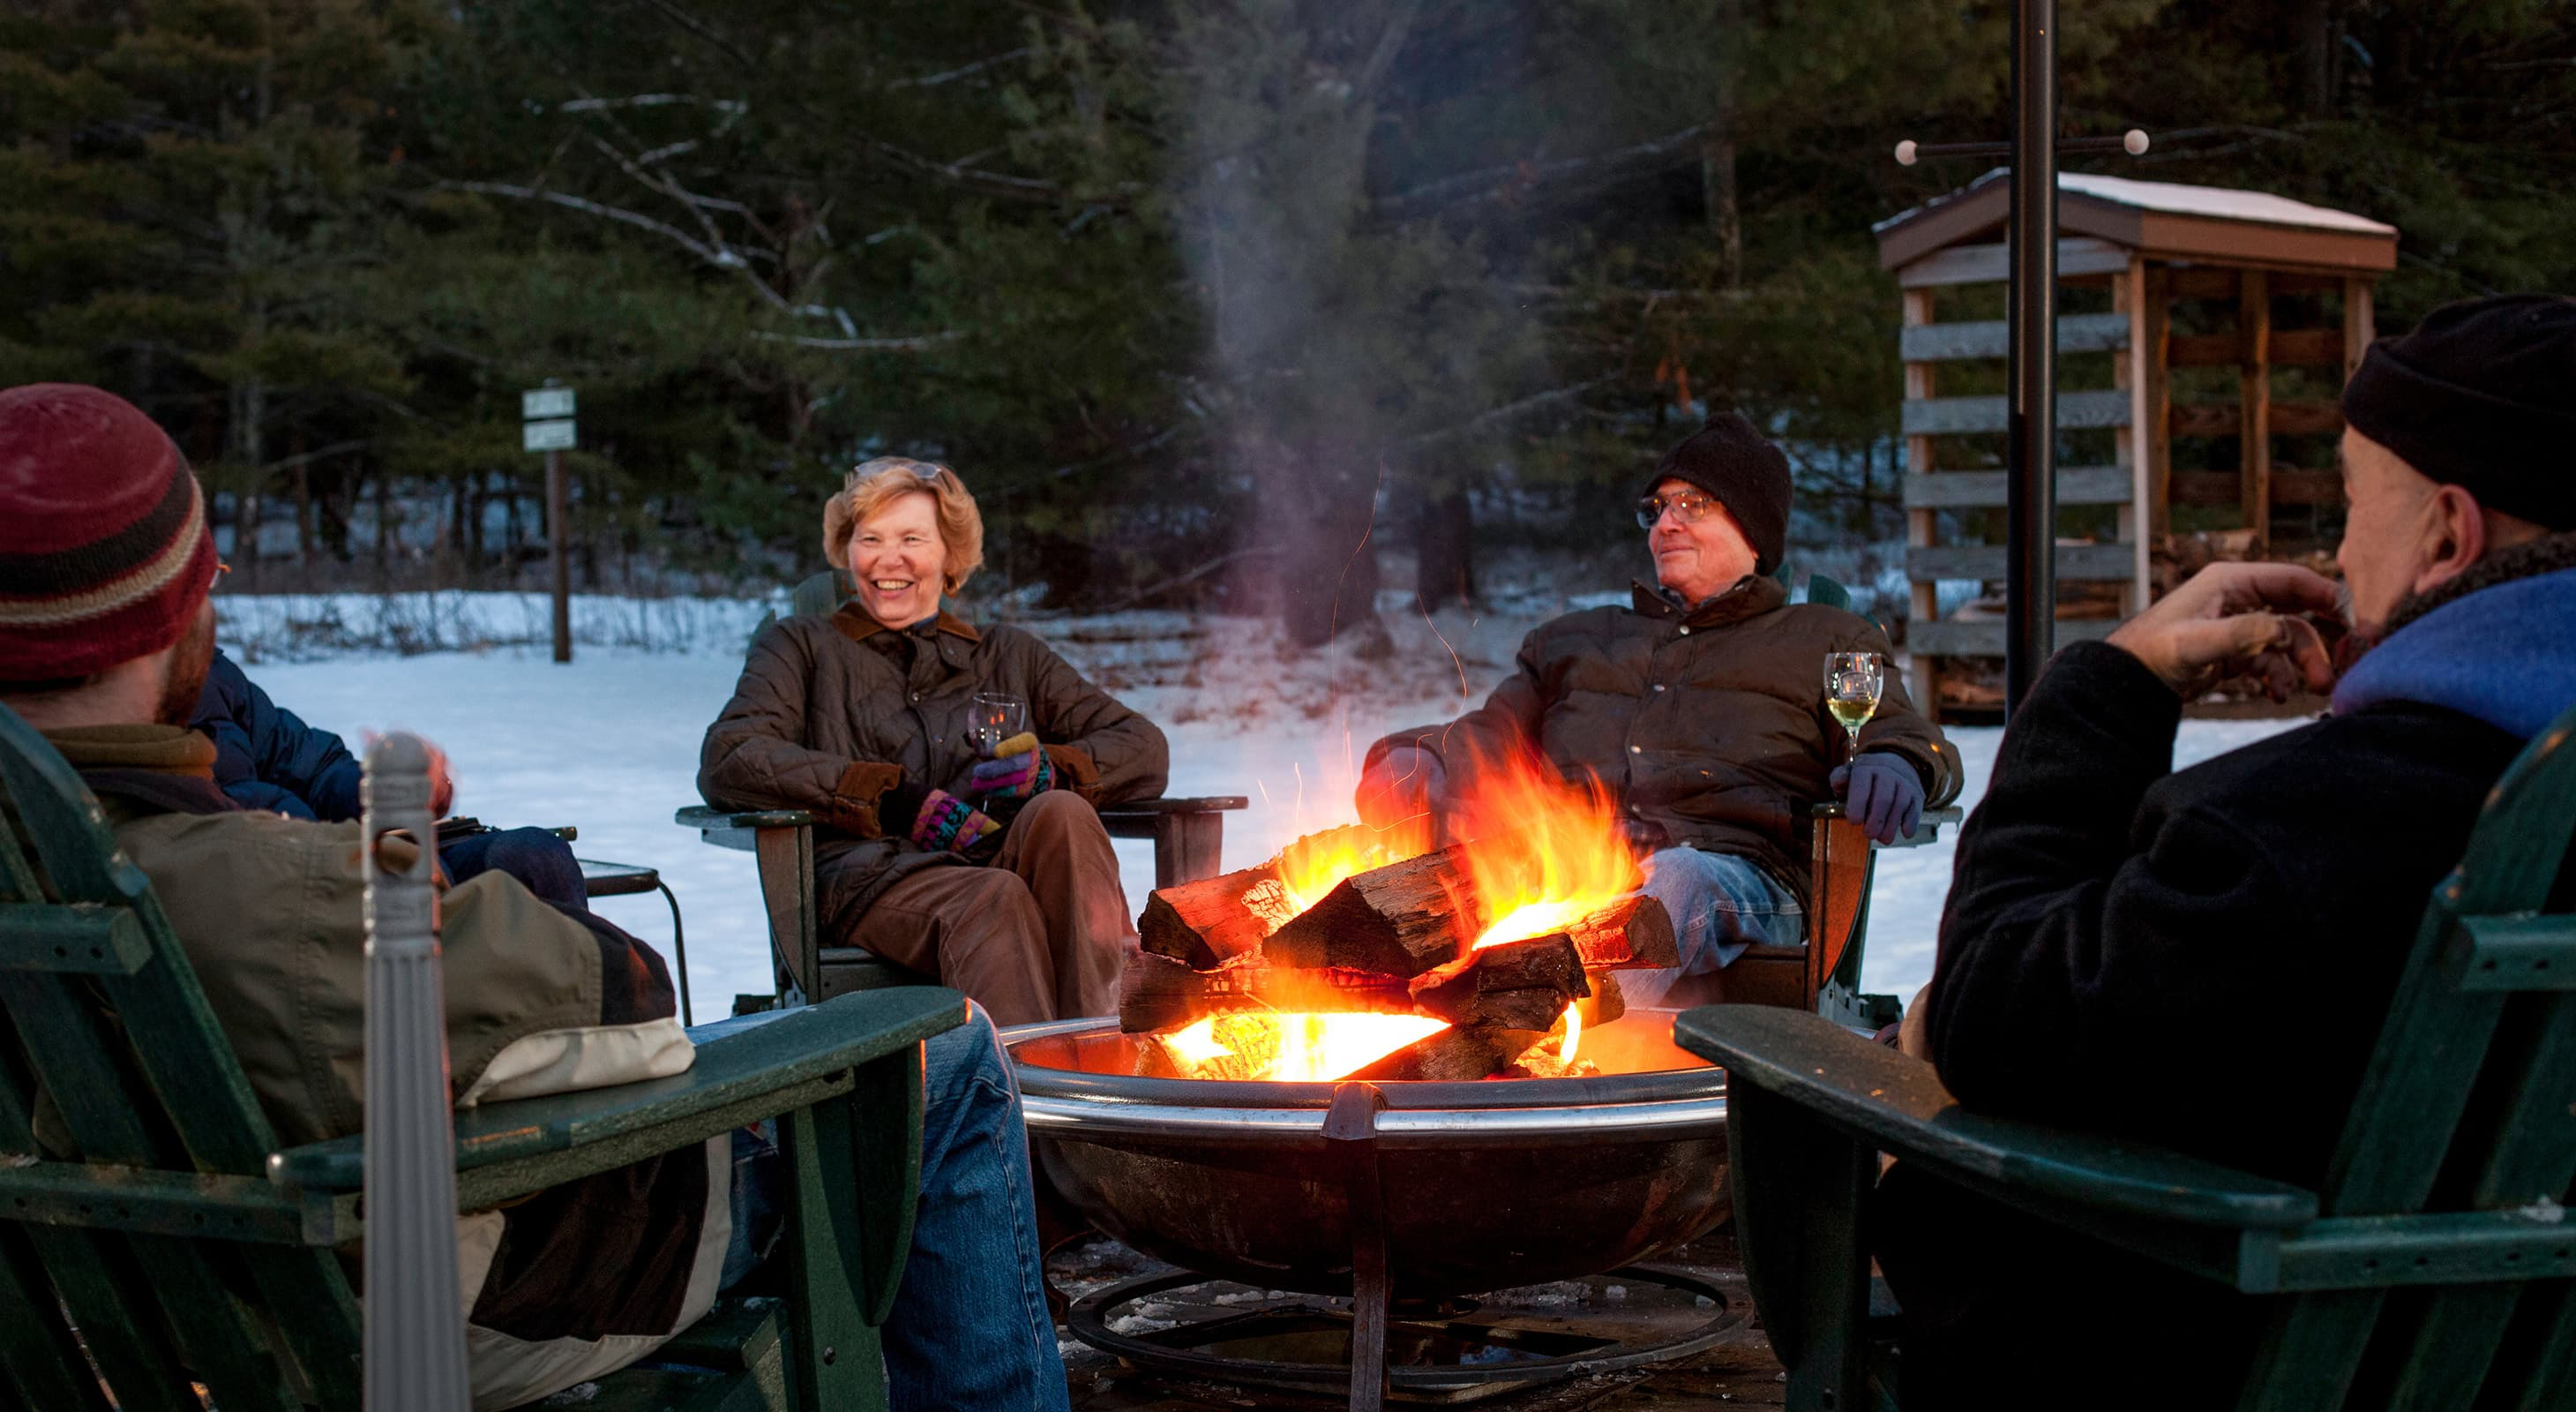 People sitting around our fire pit in winter